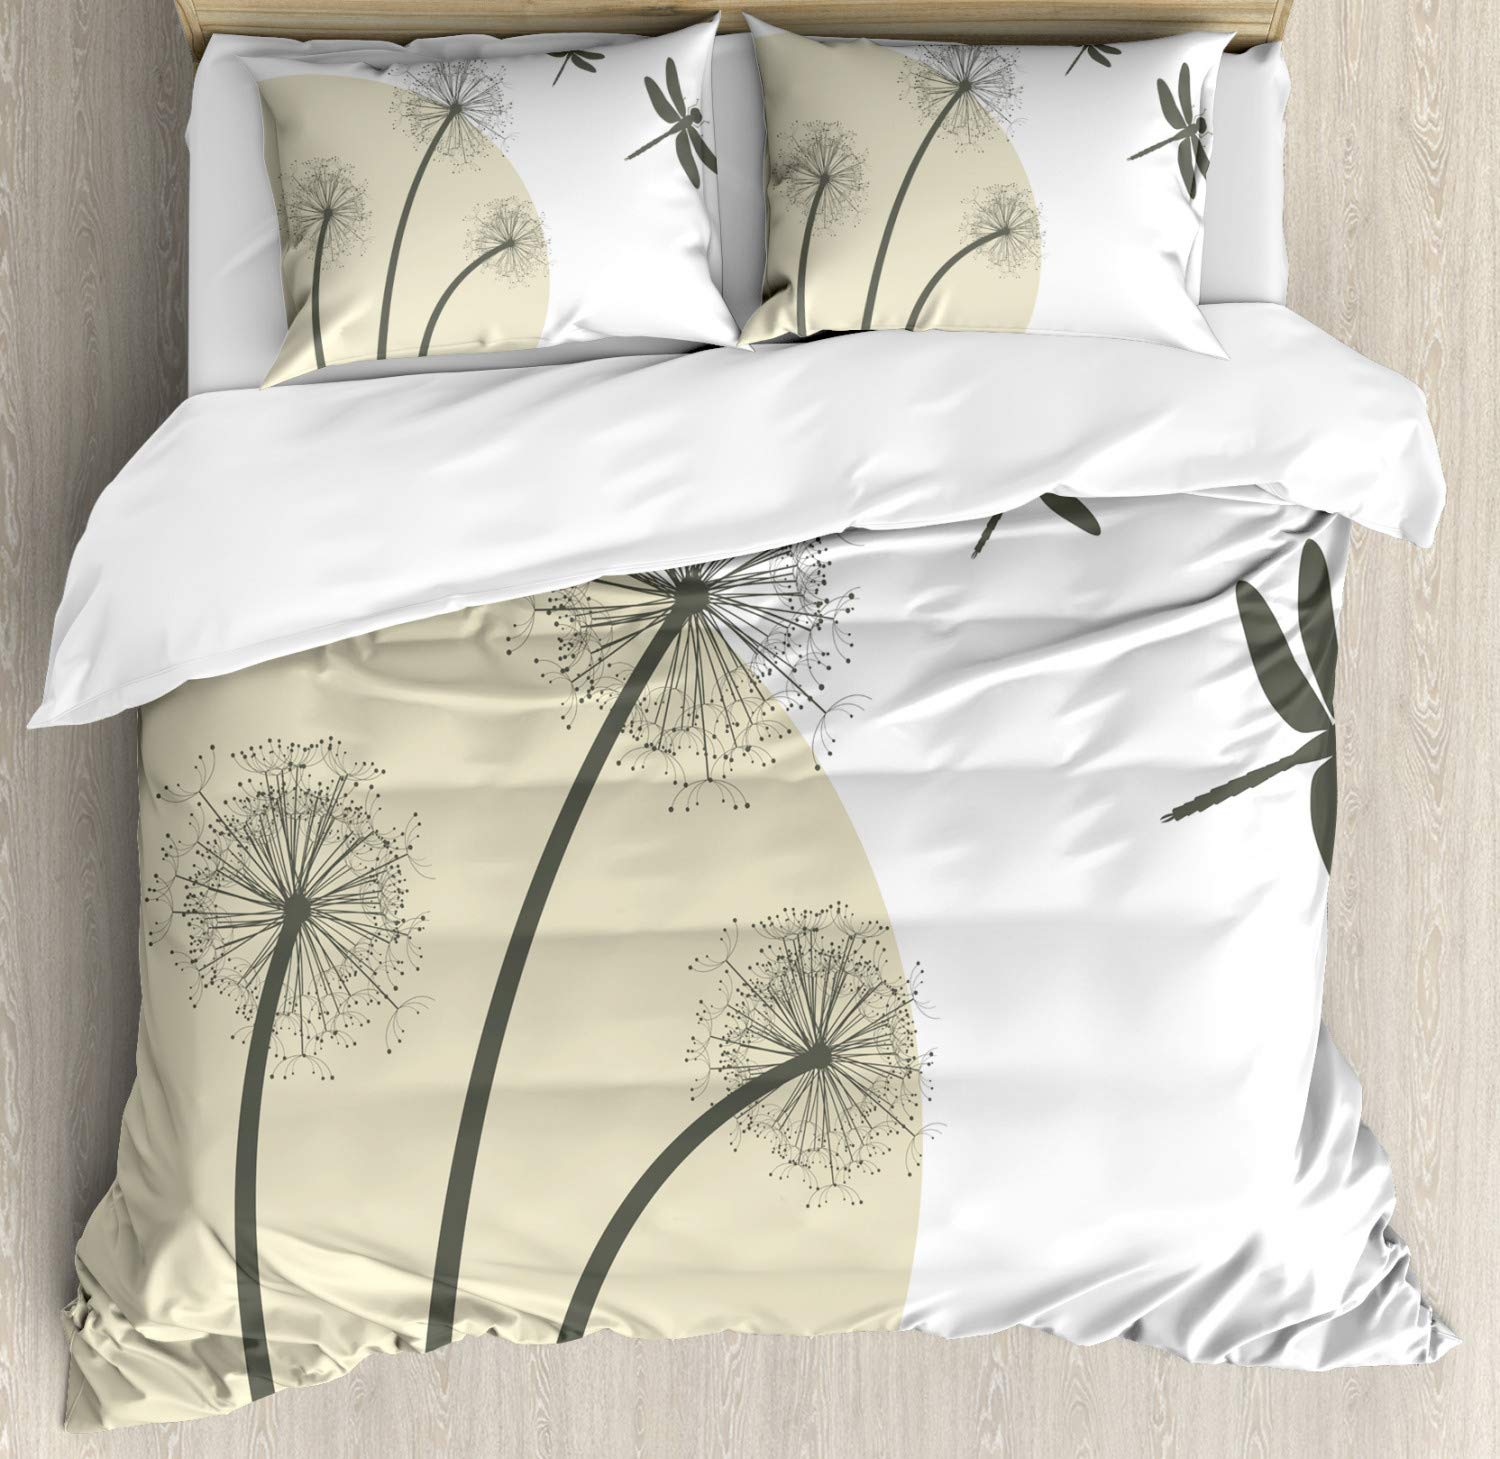 Ambesonne Dragonfly Duvet Cover Set Queen Size, Spring Dandelions Botany Blossoming Petals Essence of Nature Growth Theme, Decorative 3 Piece Bedding Set with 2 Pillow Shams, Tan Army Green